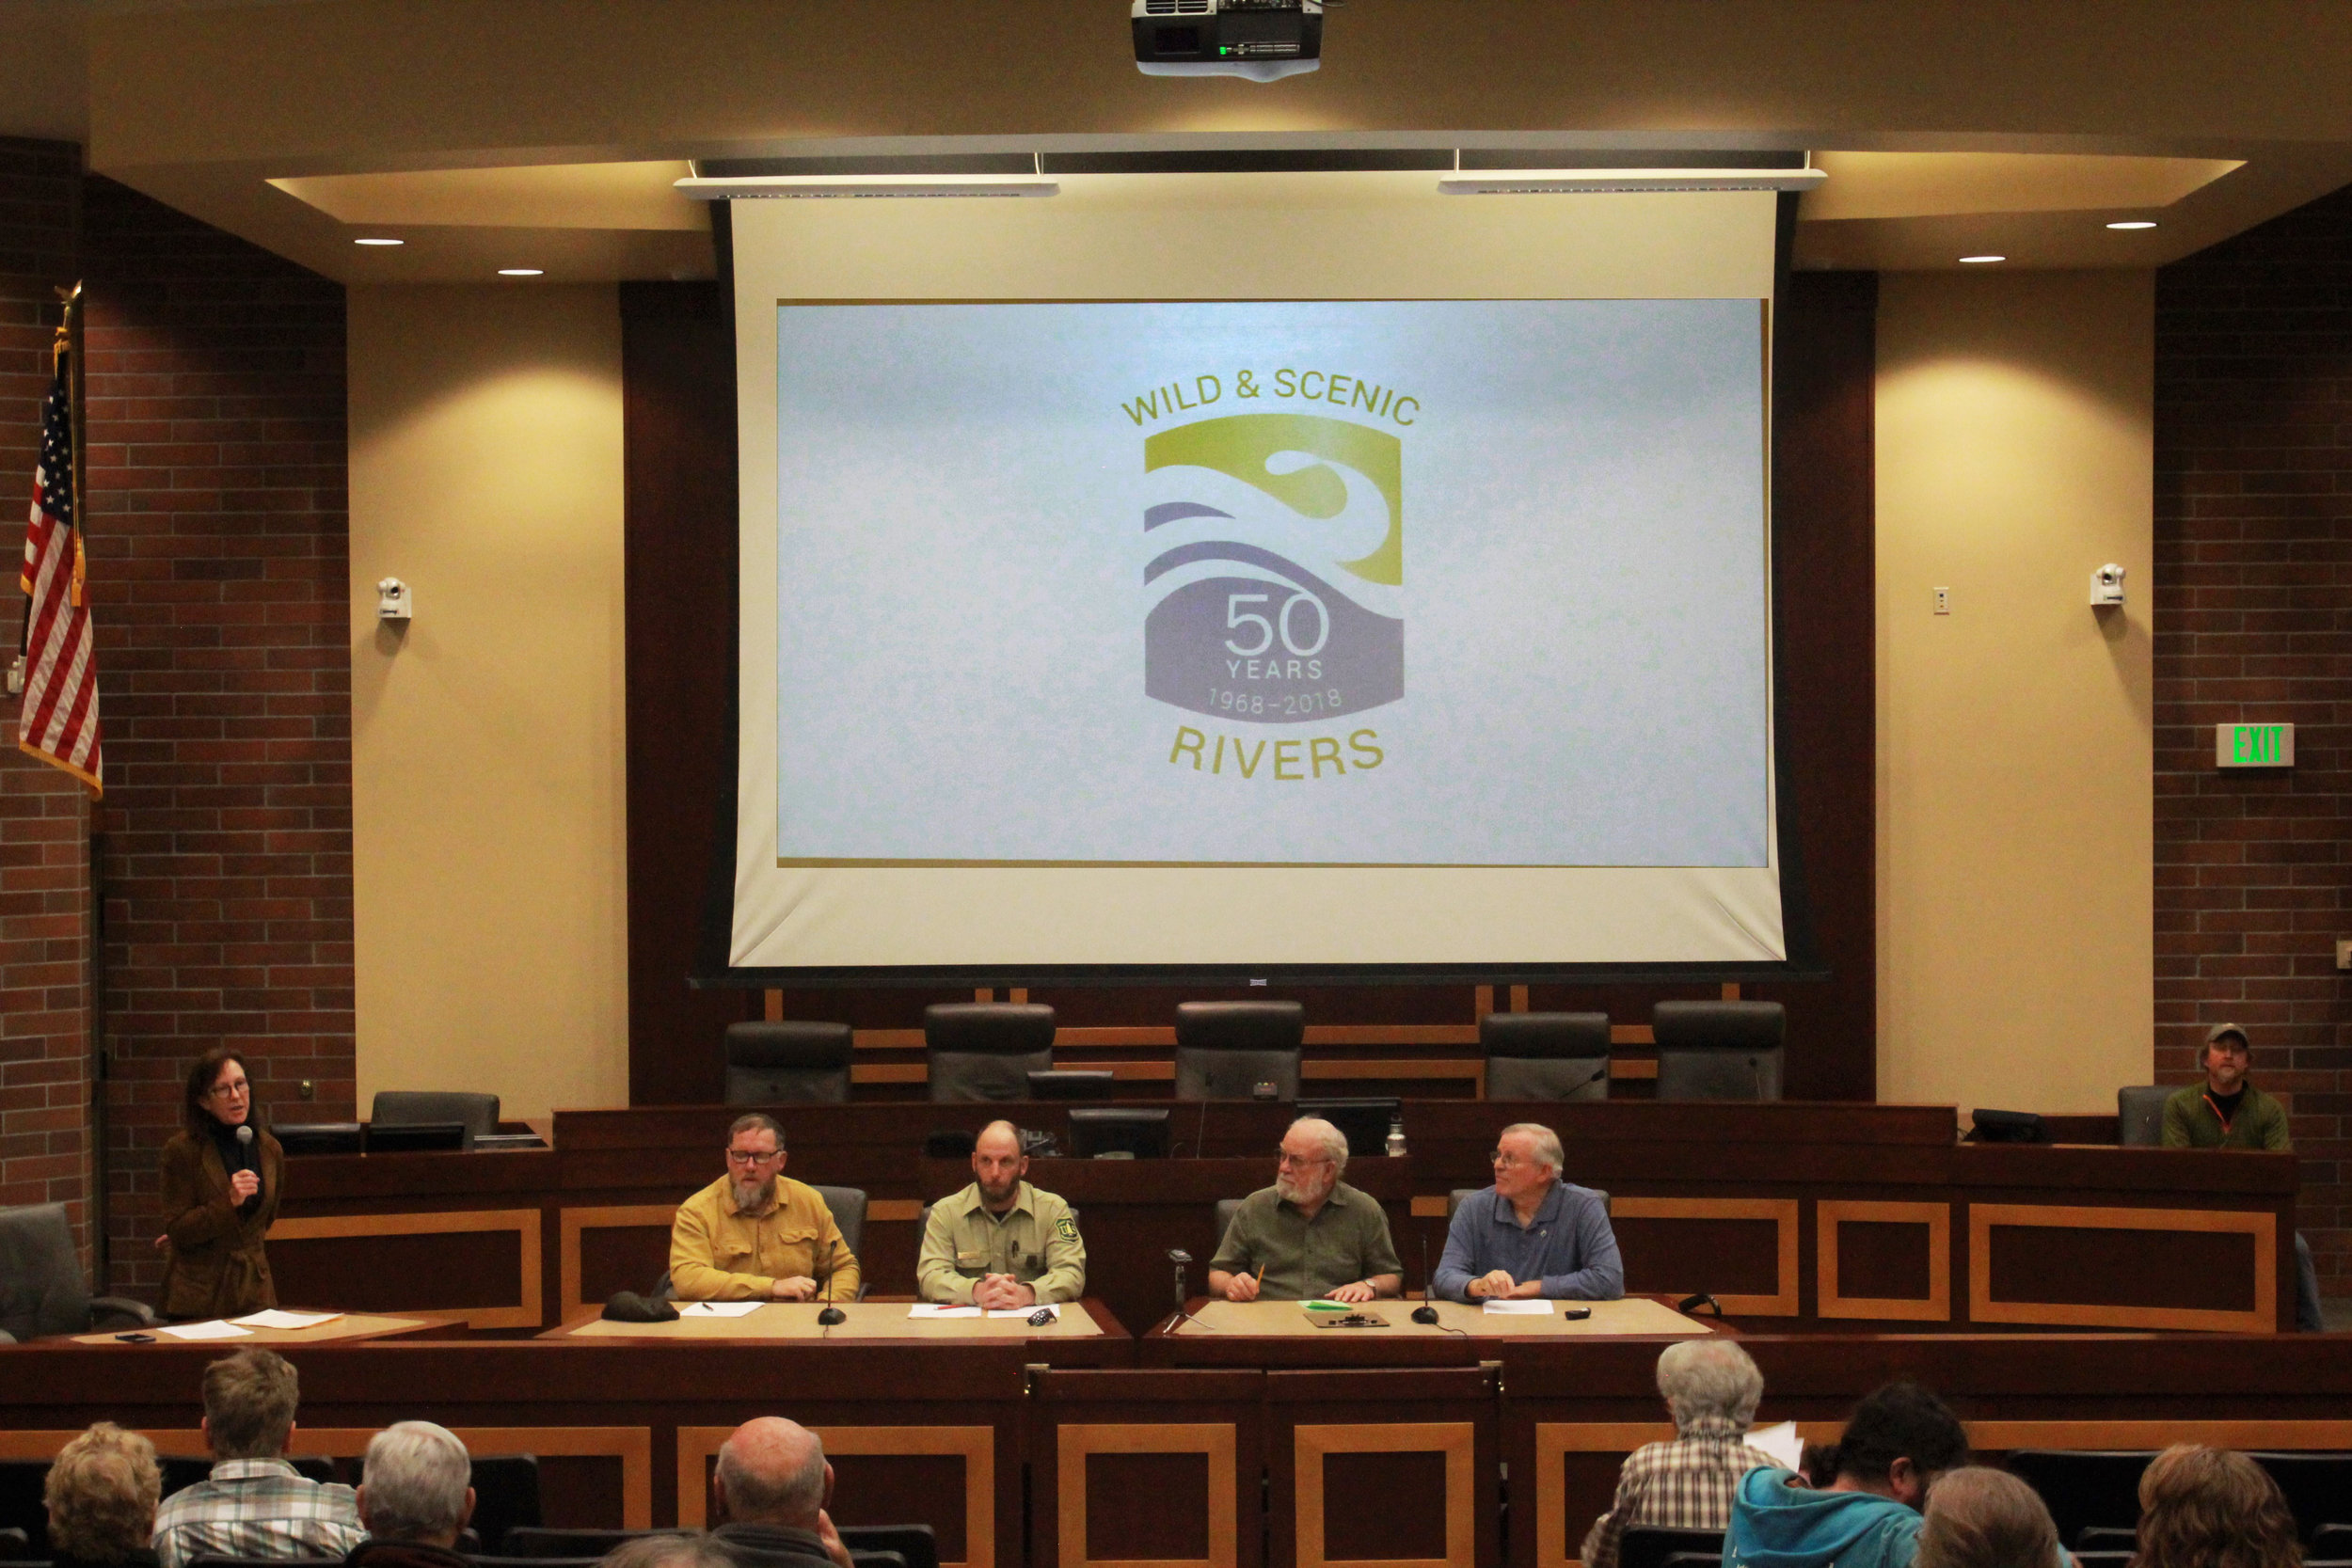 Panelists gather in Moscow, Idaho, to discuss the fiftieth anniversary of the Wild and Scenic Rivers Act. From left to right: Dustin Aherin, Chris Noyes, Linwood Laughey and Kevin Lewis. Photo by Ava Isaacson.